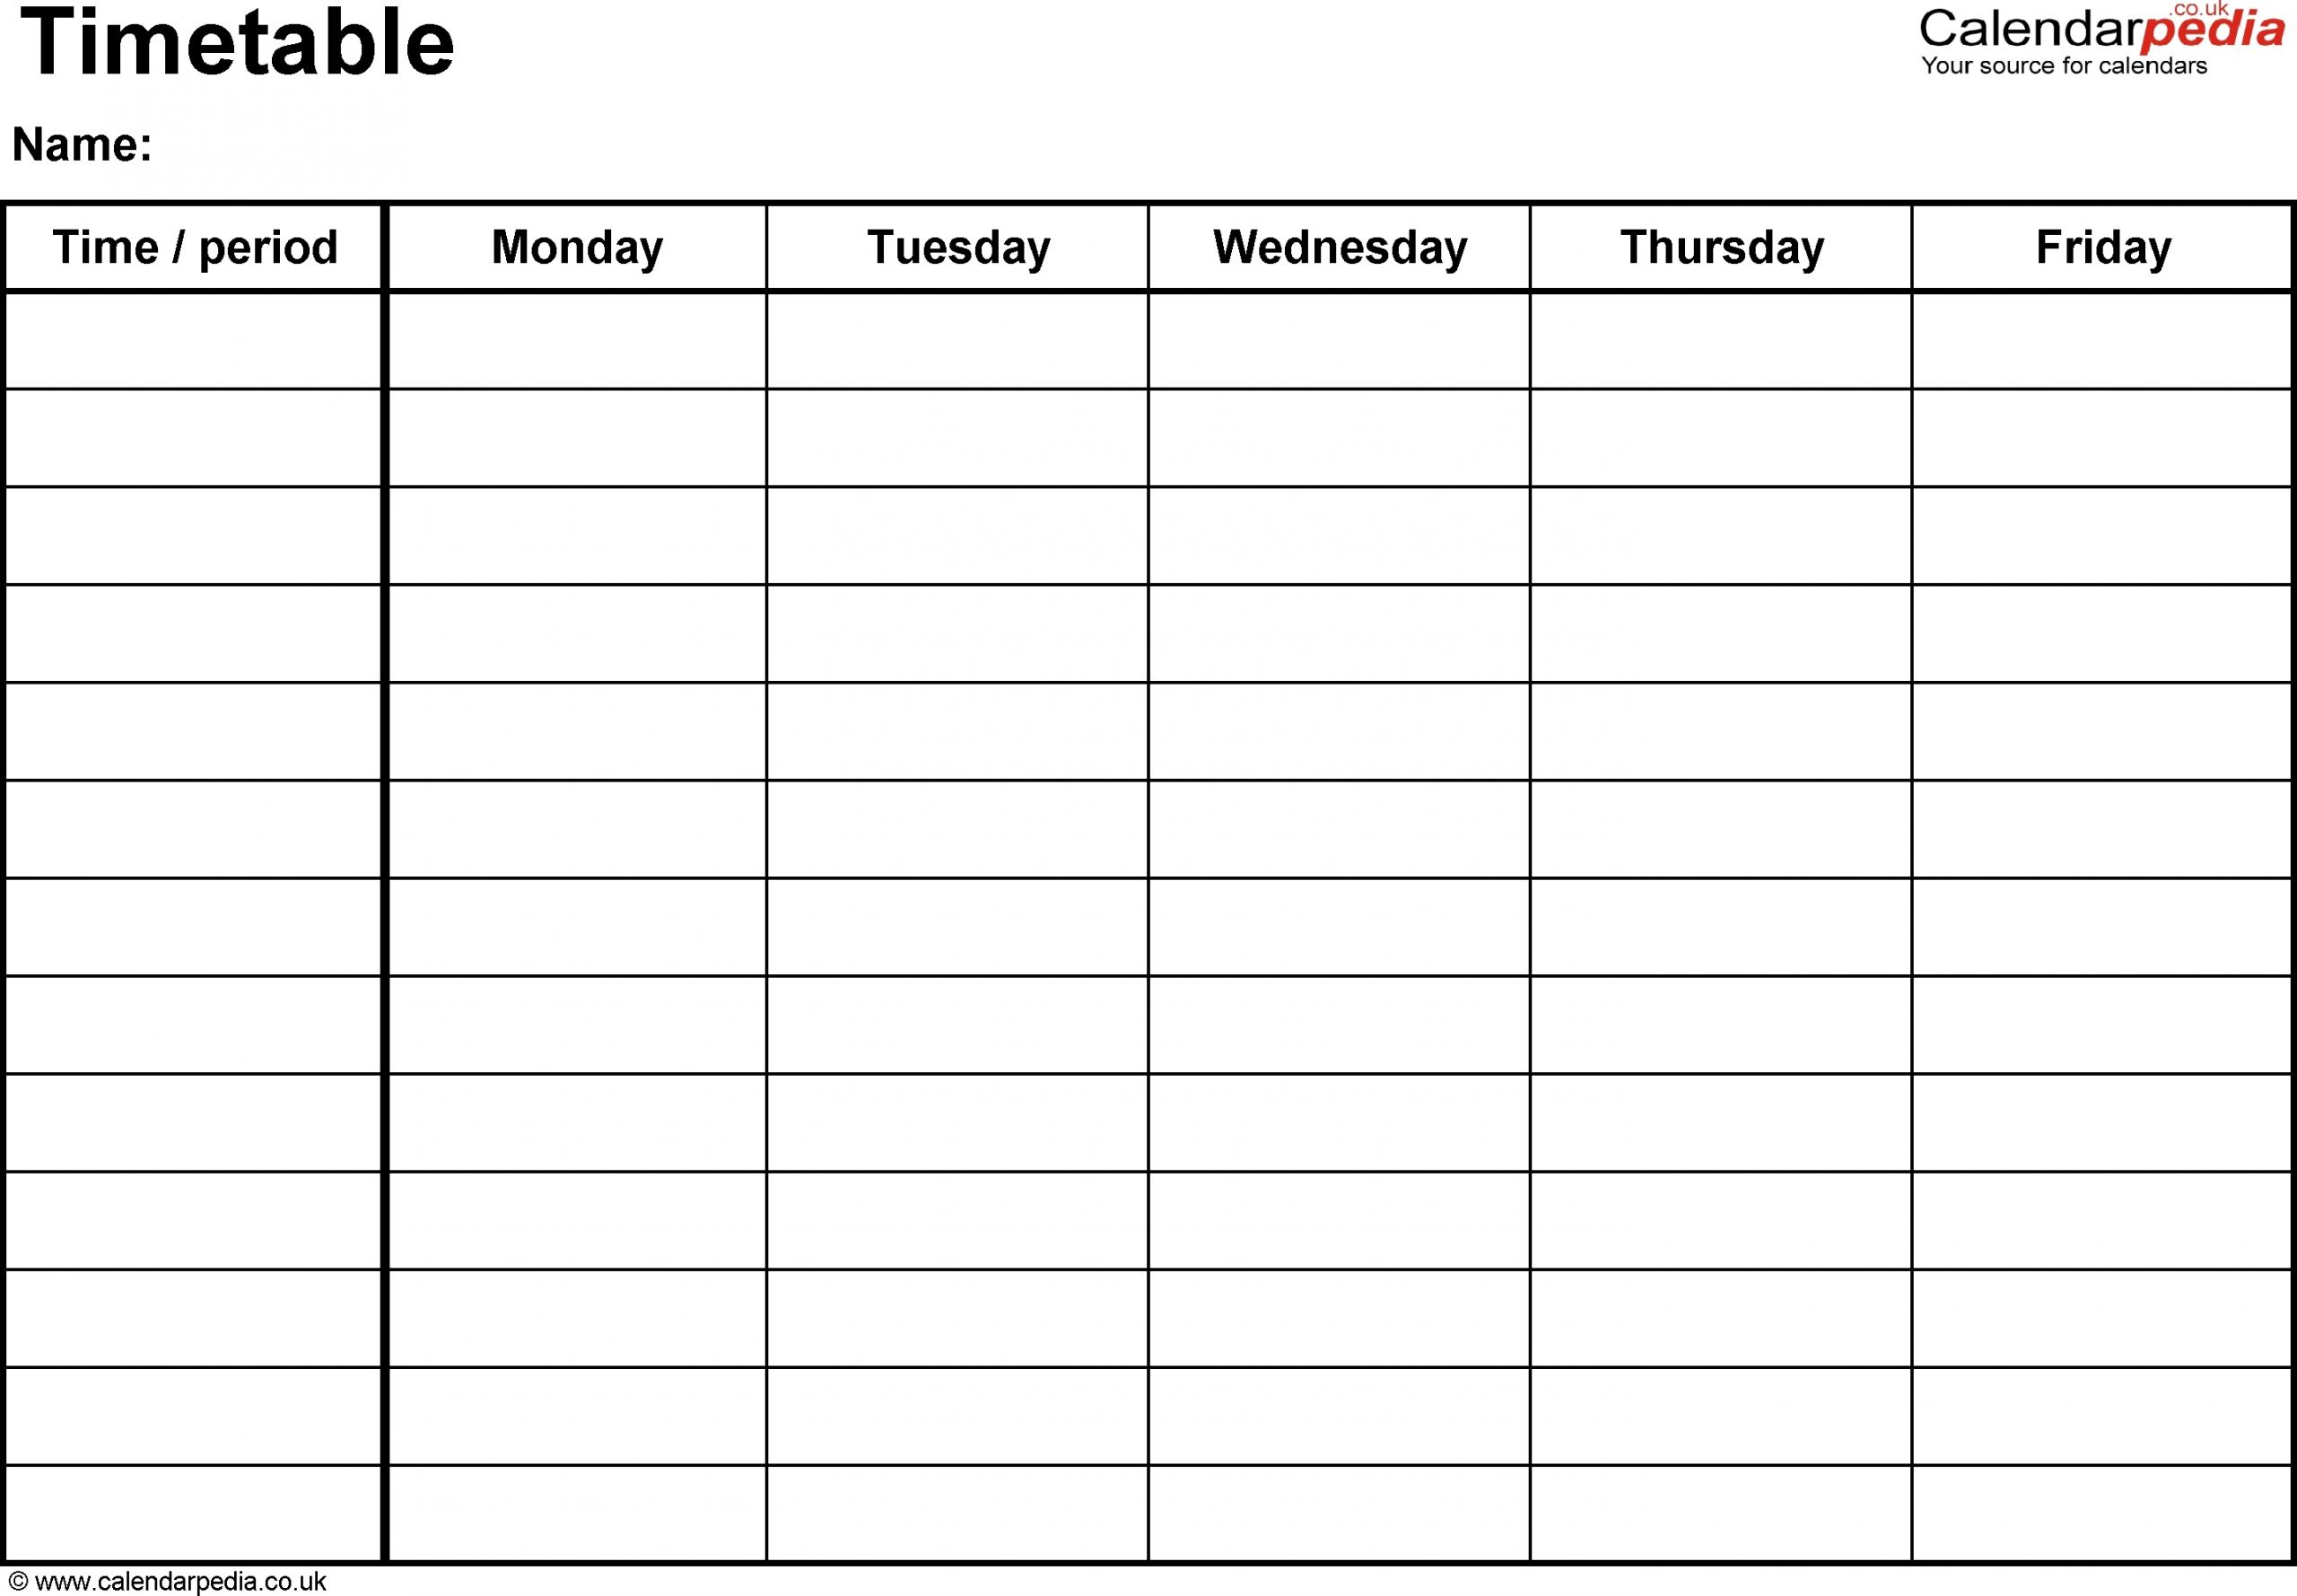 Monday Though Friday Timed Schedule - Calendar Inspiration This Week Monday To Friday Printable Calendar